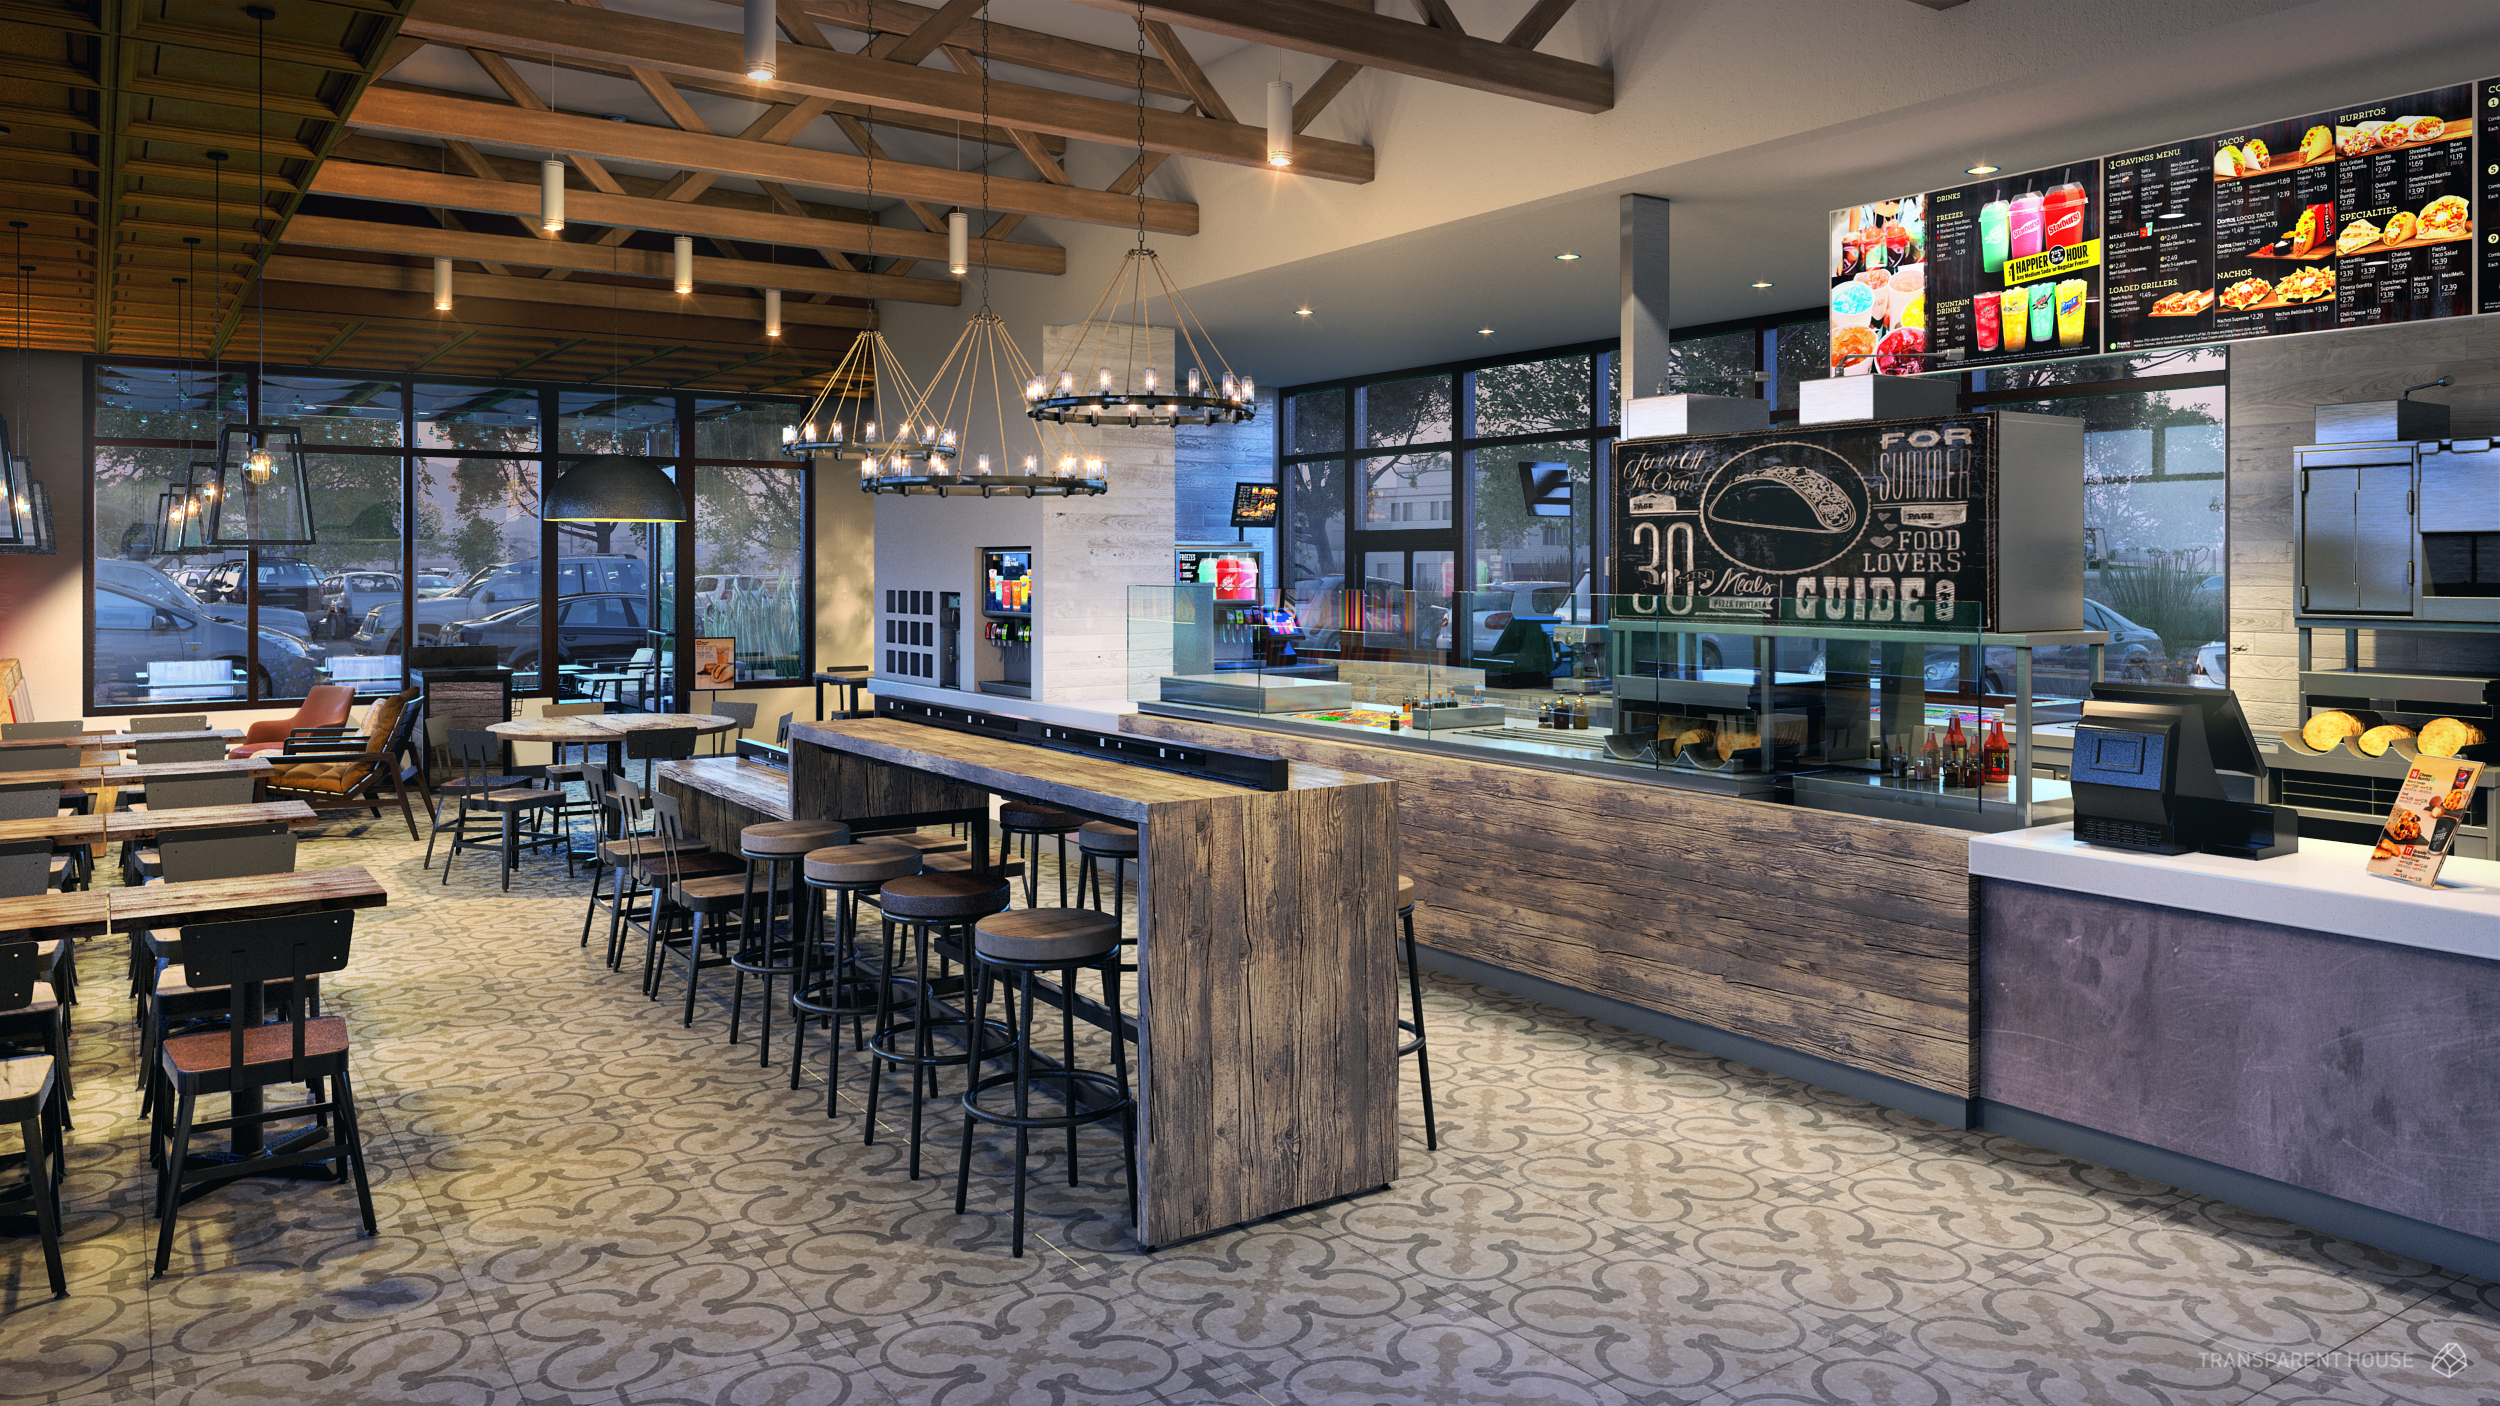 taco bell banks on upscale decor with four new store designs - eater